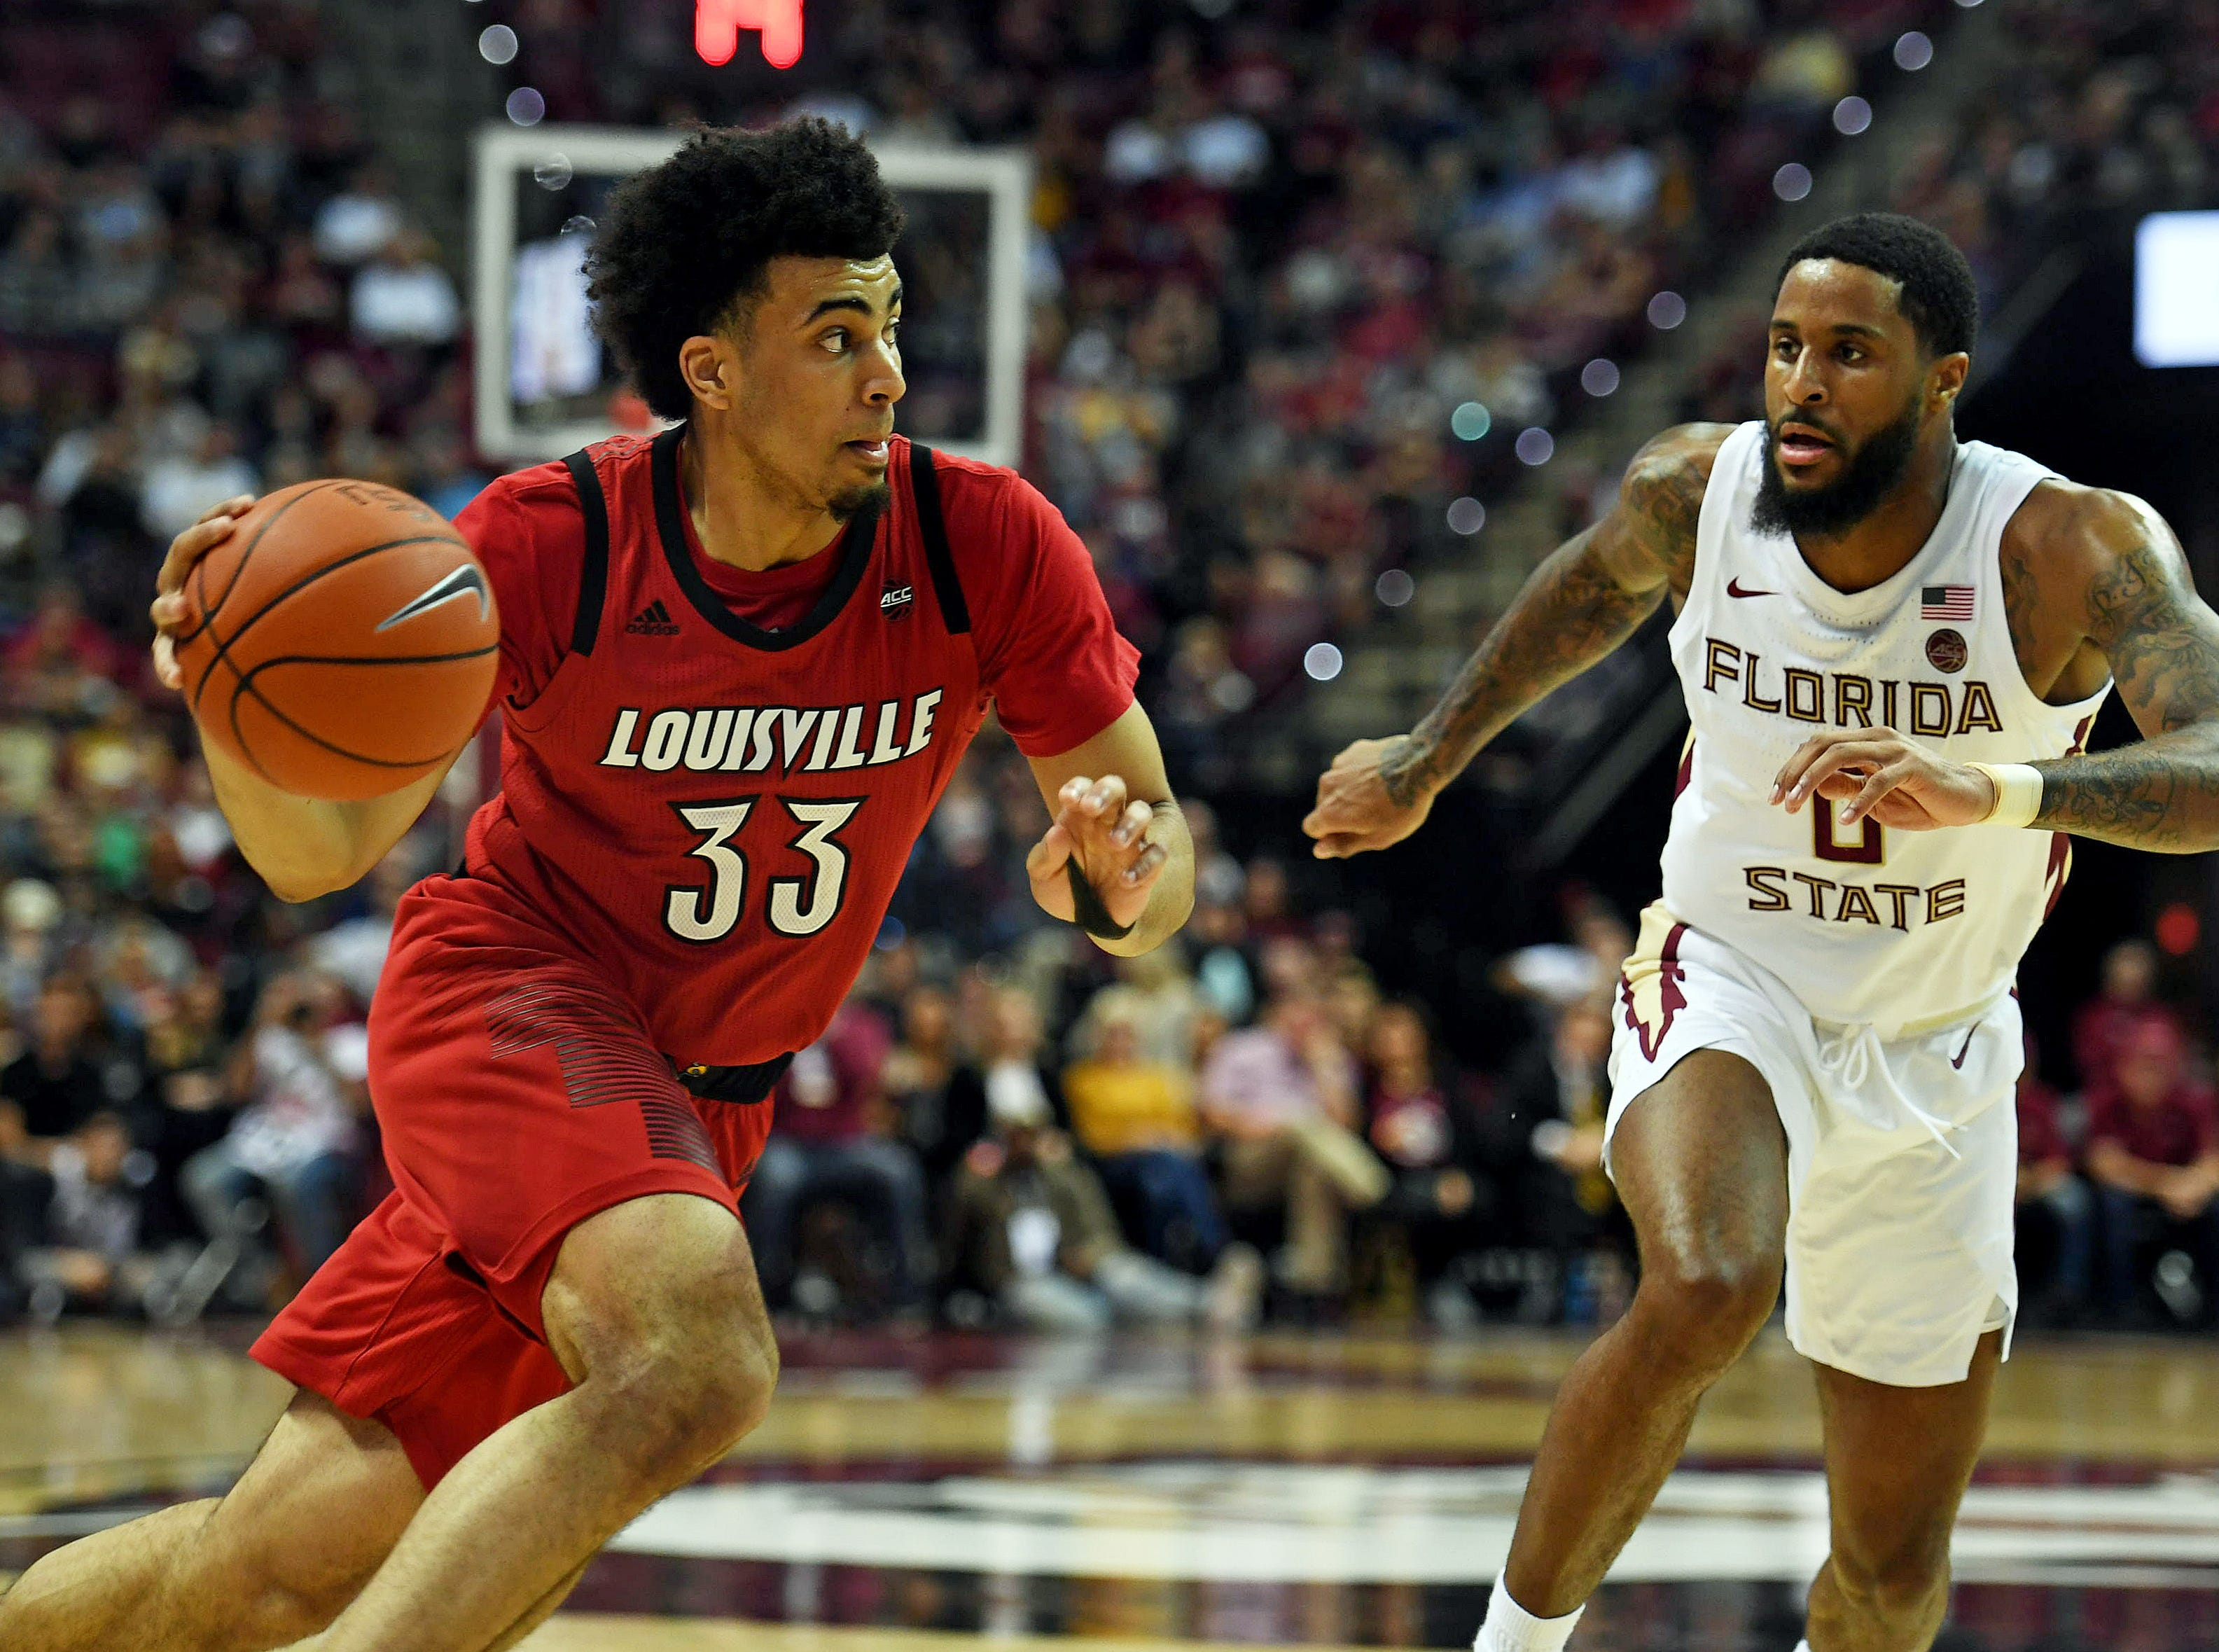 Feb 9, 2019; Tallahassee, FL, USA; Louisville Cardinals forward Jordan Nwora (33) drives the ball against Florida State Seminoles forward Phil Cofer (0) during the second half at Donald L. Tucker Center. Mandatory Credit: Melina Myers-USA TODAY Sports